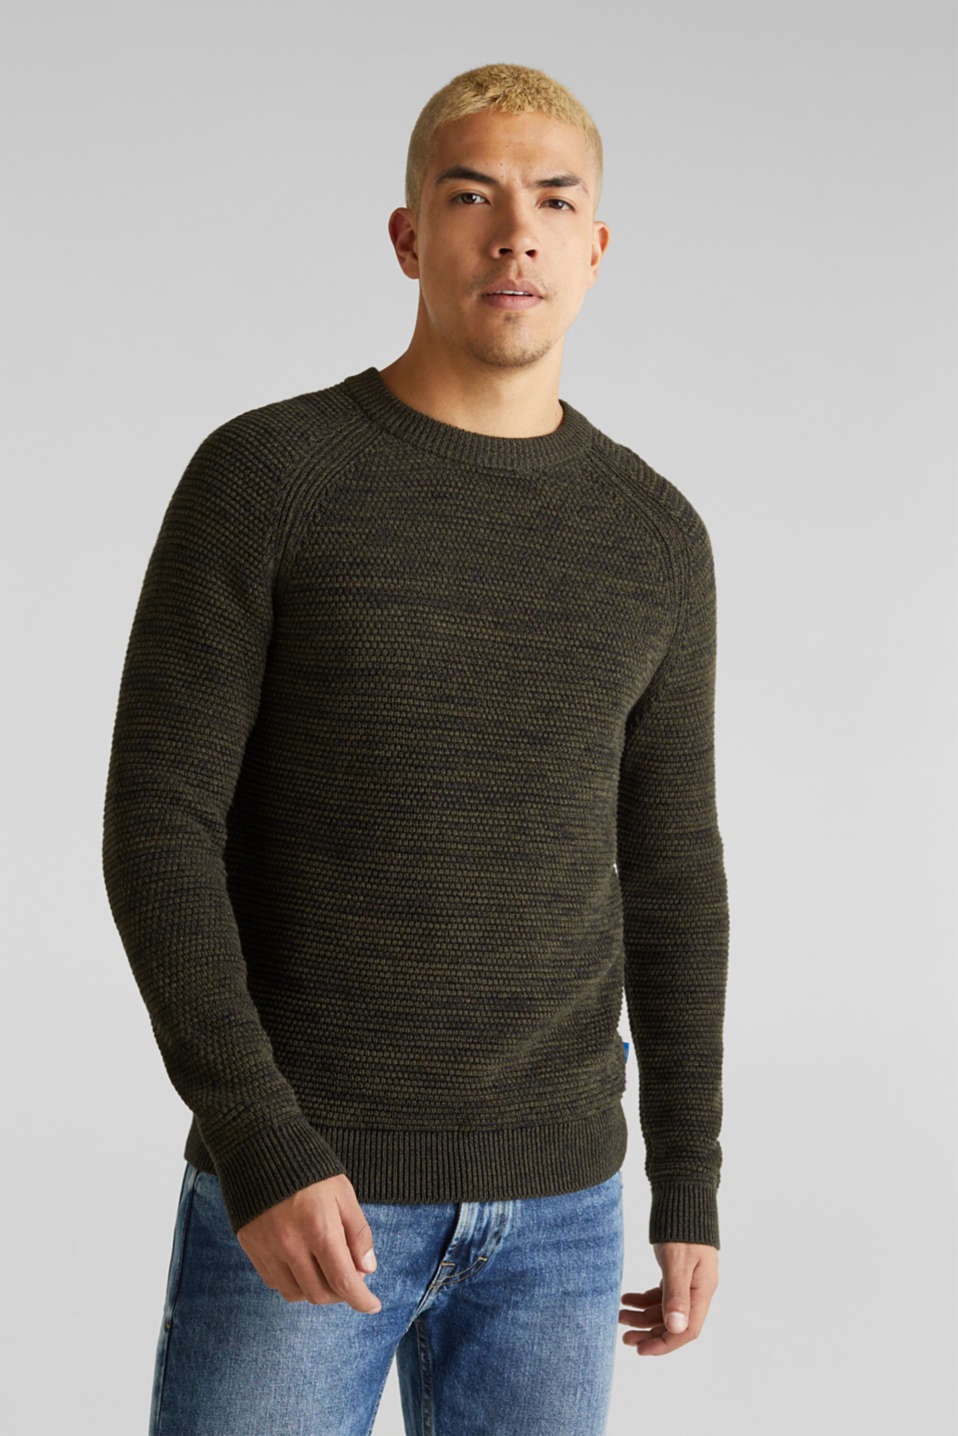 Textured jumper made of 100% cotton, KHAKI GREEN 5, detail image number 0